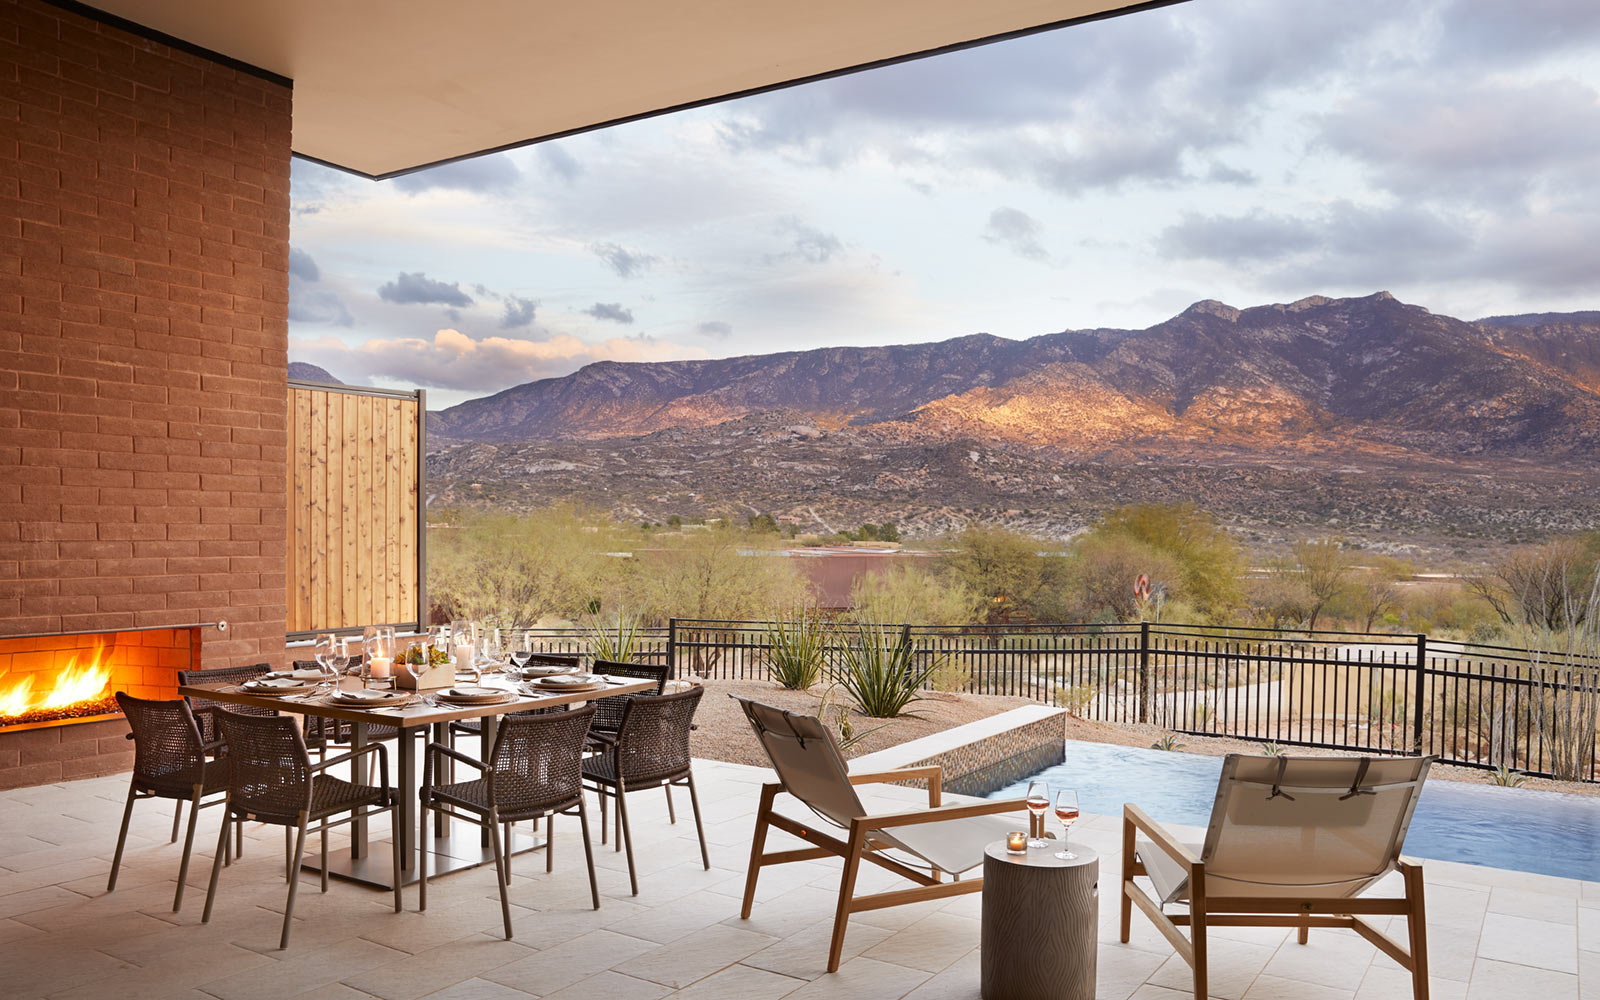 4. Miraval Arizona Resort & Spa, Tucson, Arizona